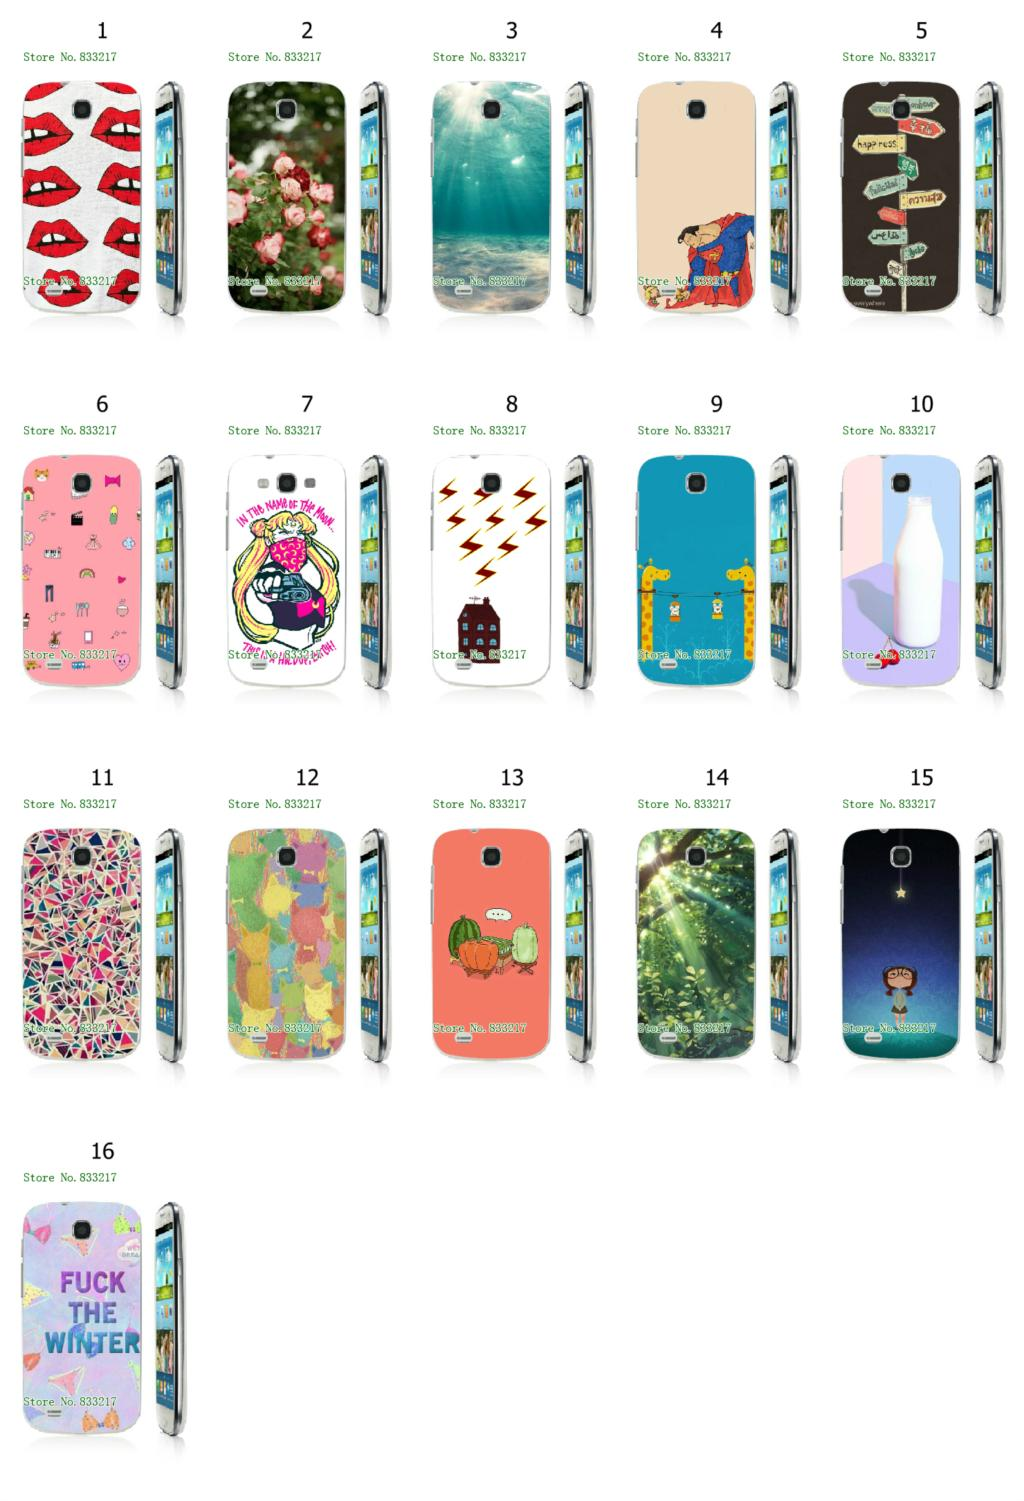 retail 1pc cute hybrid lovey kiss flowers 15designs white hard mobile phone cases cover for samsung galaxy s3 i9300 free ship(China (Mainland))